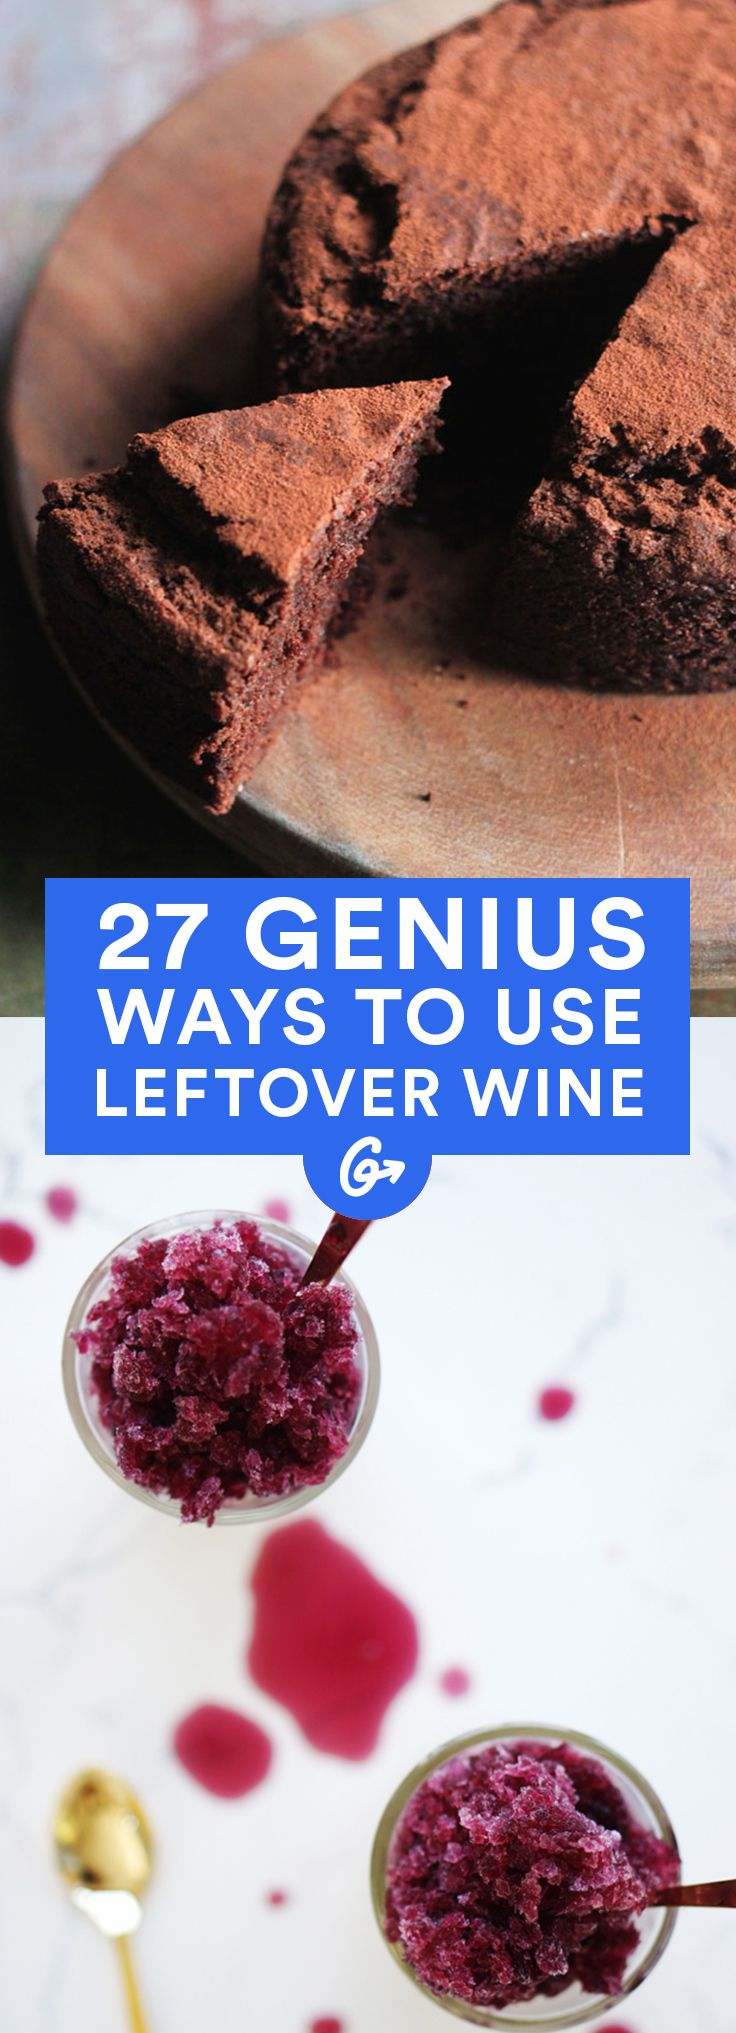 Genius! #DIY #wine #recipes http://greatist.com/eat/ways-use-leftover-wine